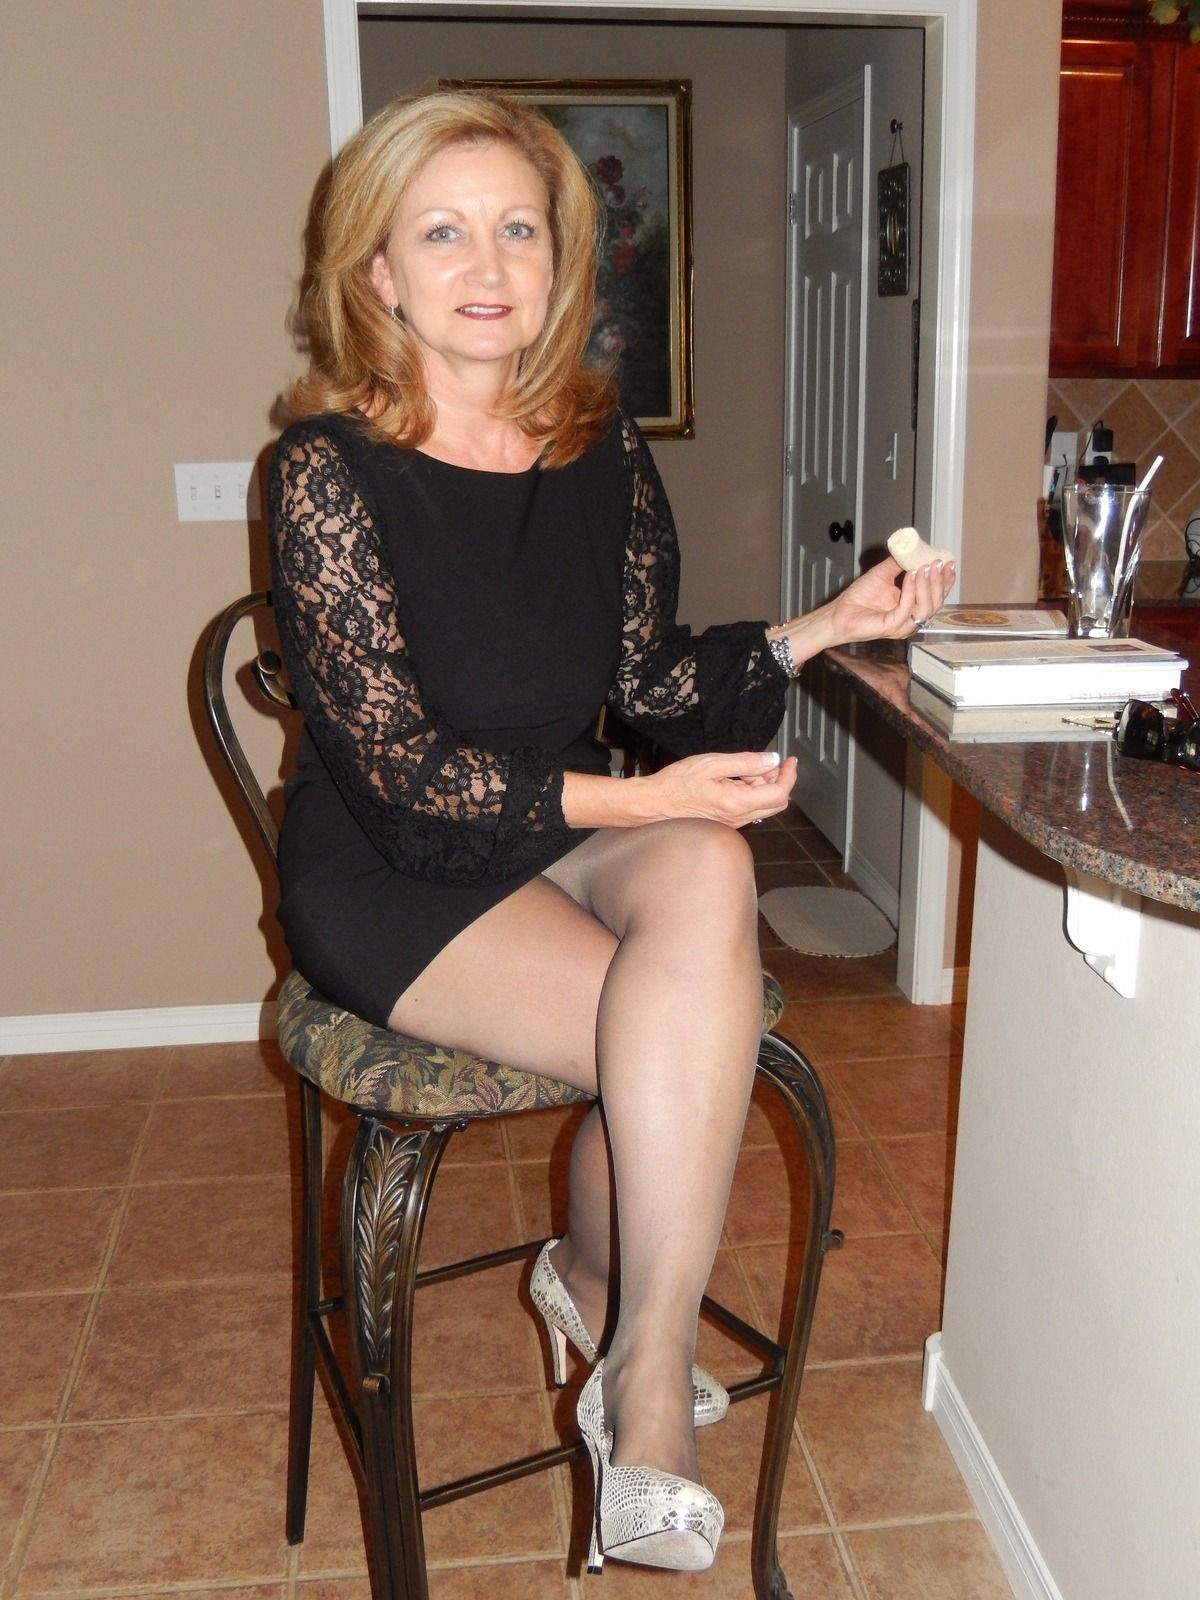 mature pantyhose | beautiful women come in all shapes and sizes